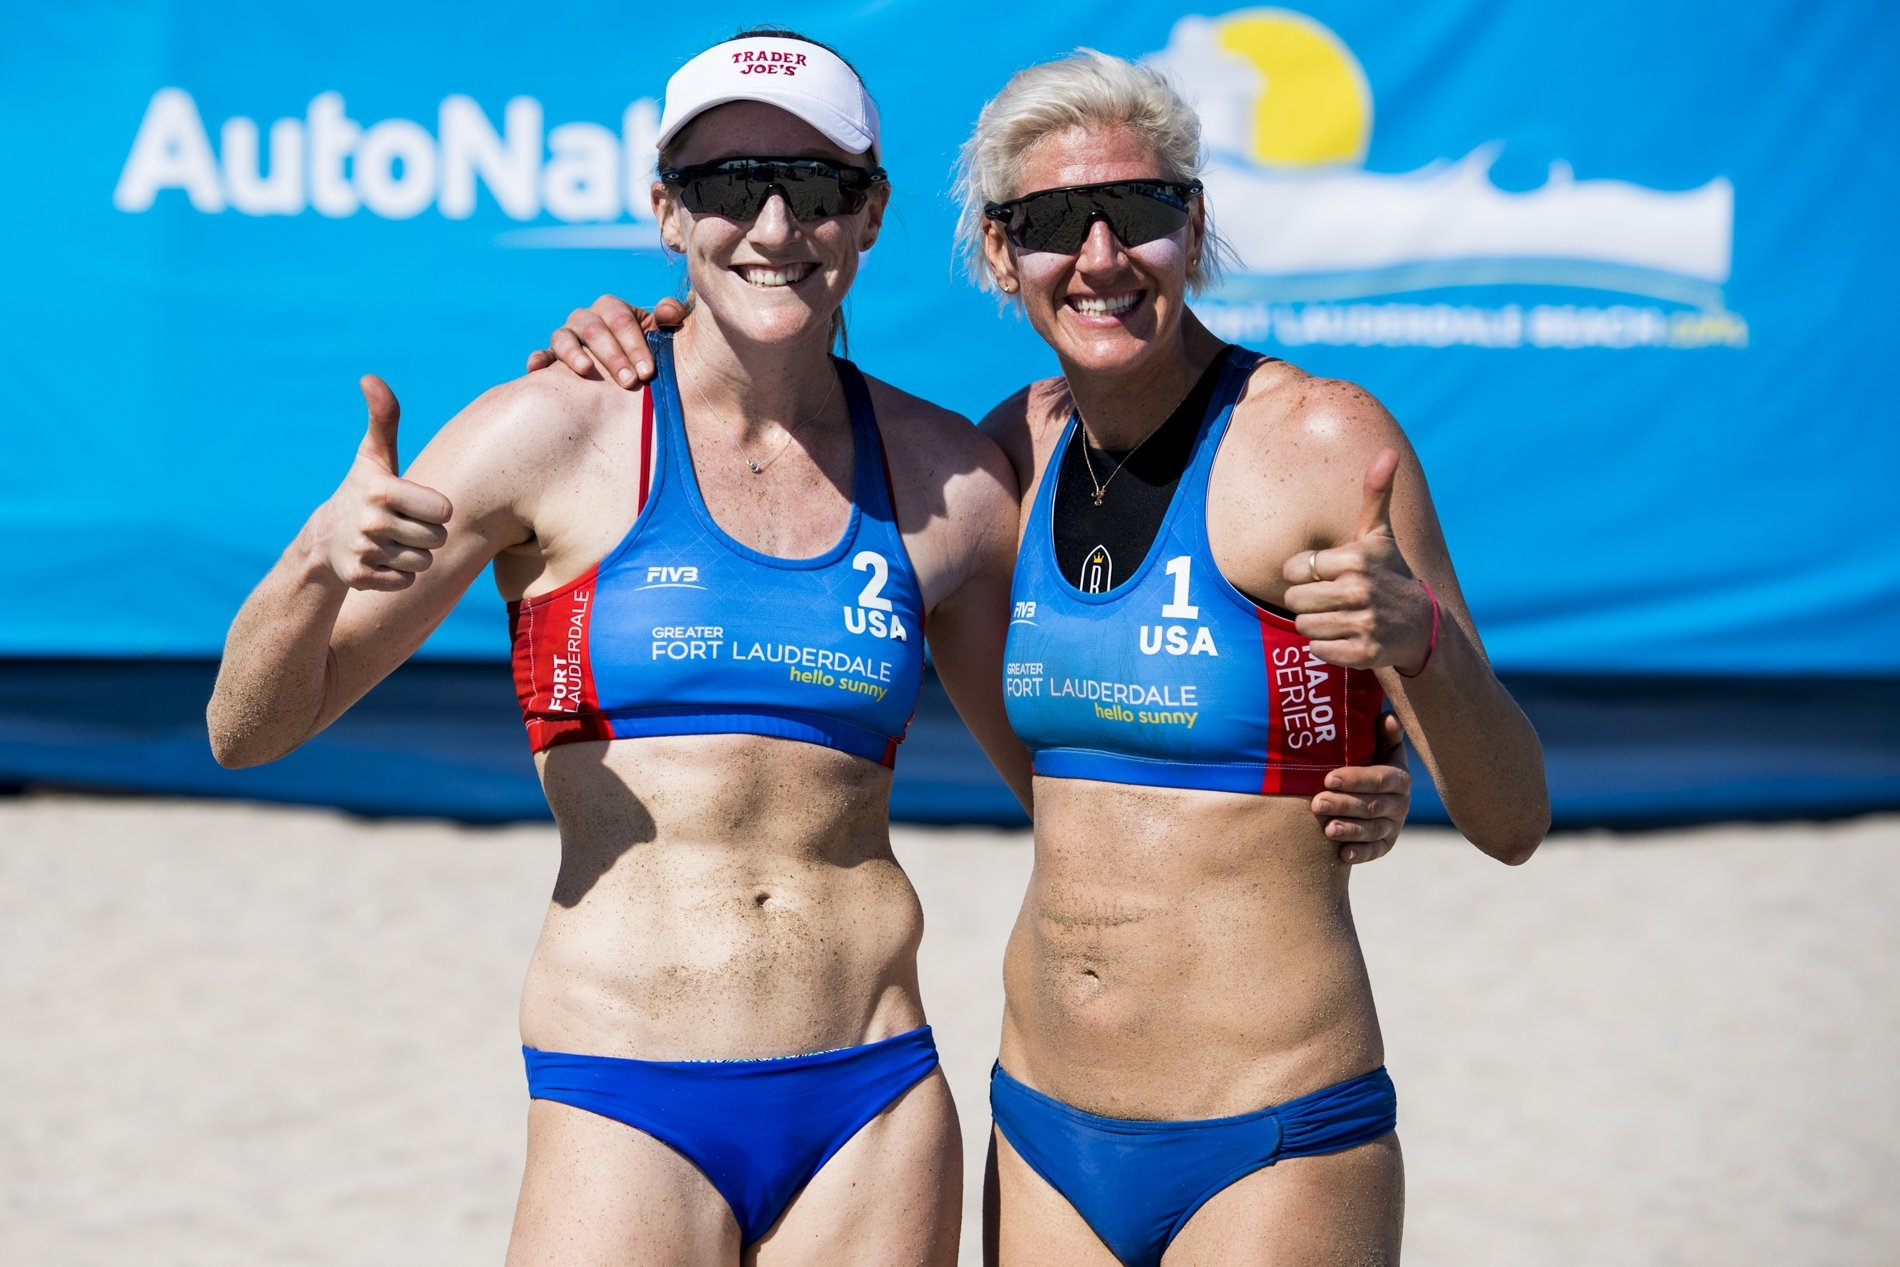 Brittany Hochevar and Emily are one of the eight women's teams qualified to the main draw in the Fort Lauderdale Major